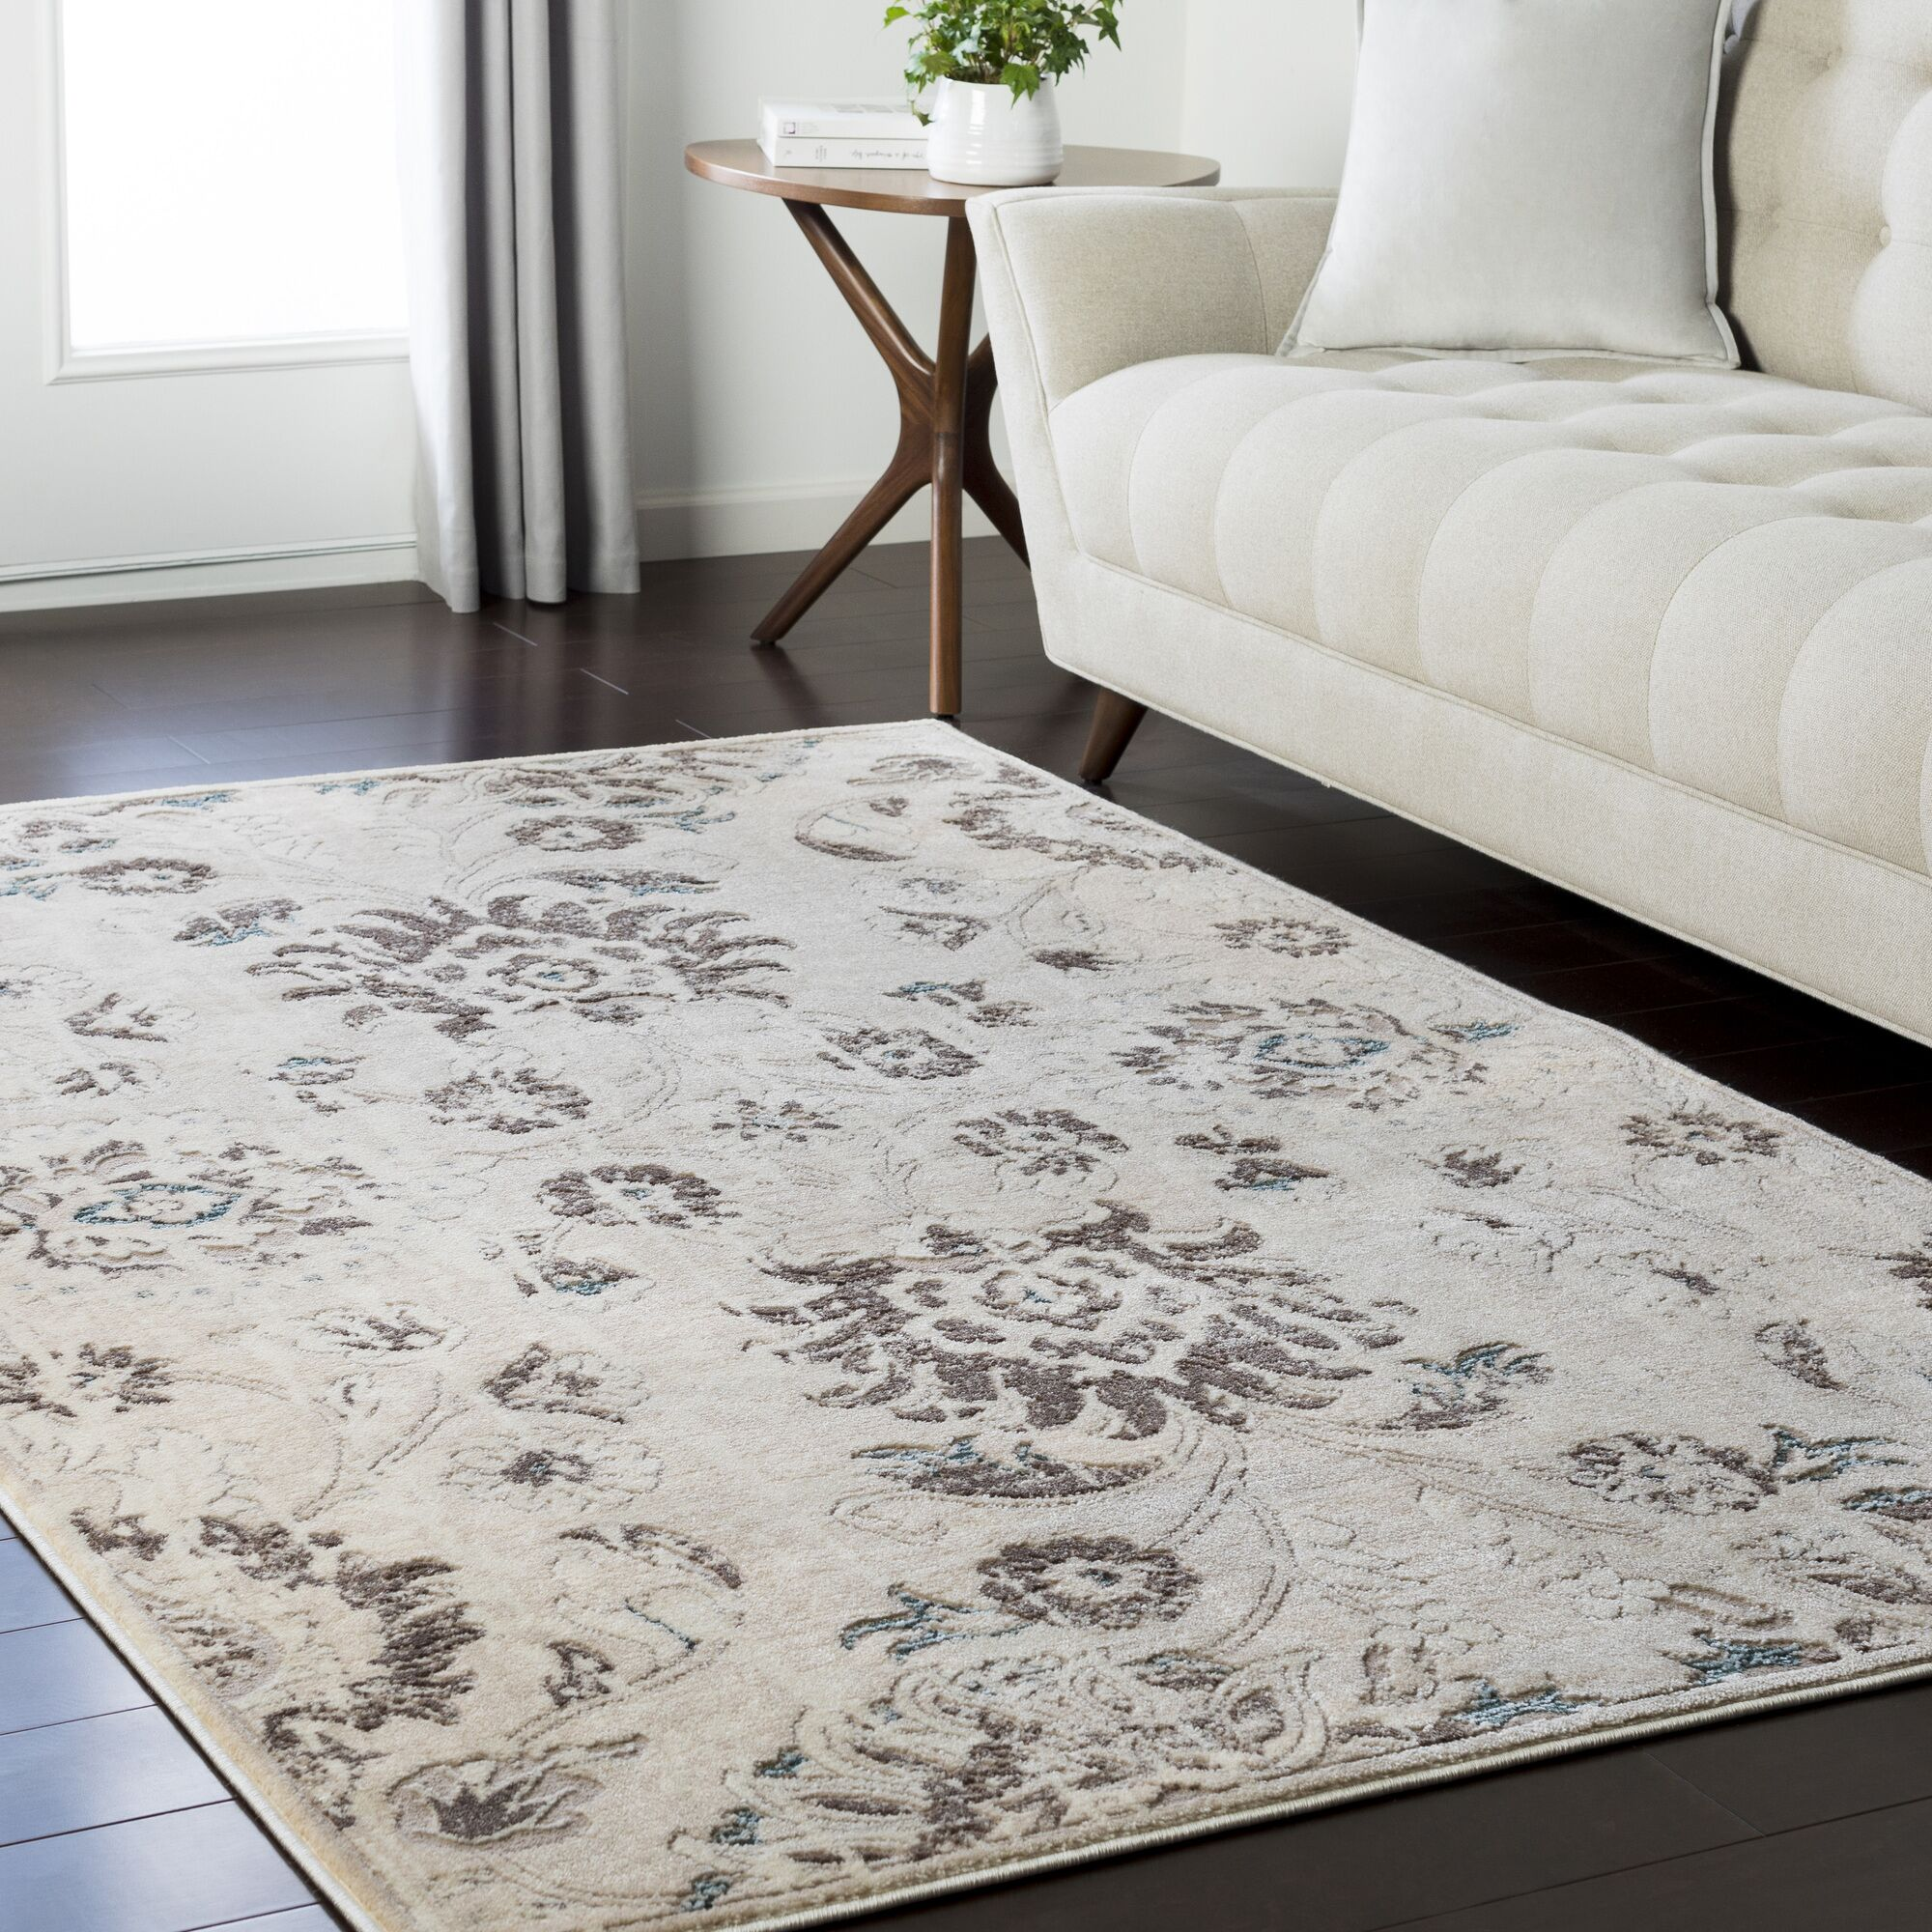 Synthia Brown Area Rug Rug Size: Rectangle 6'7